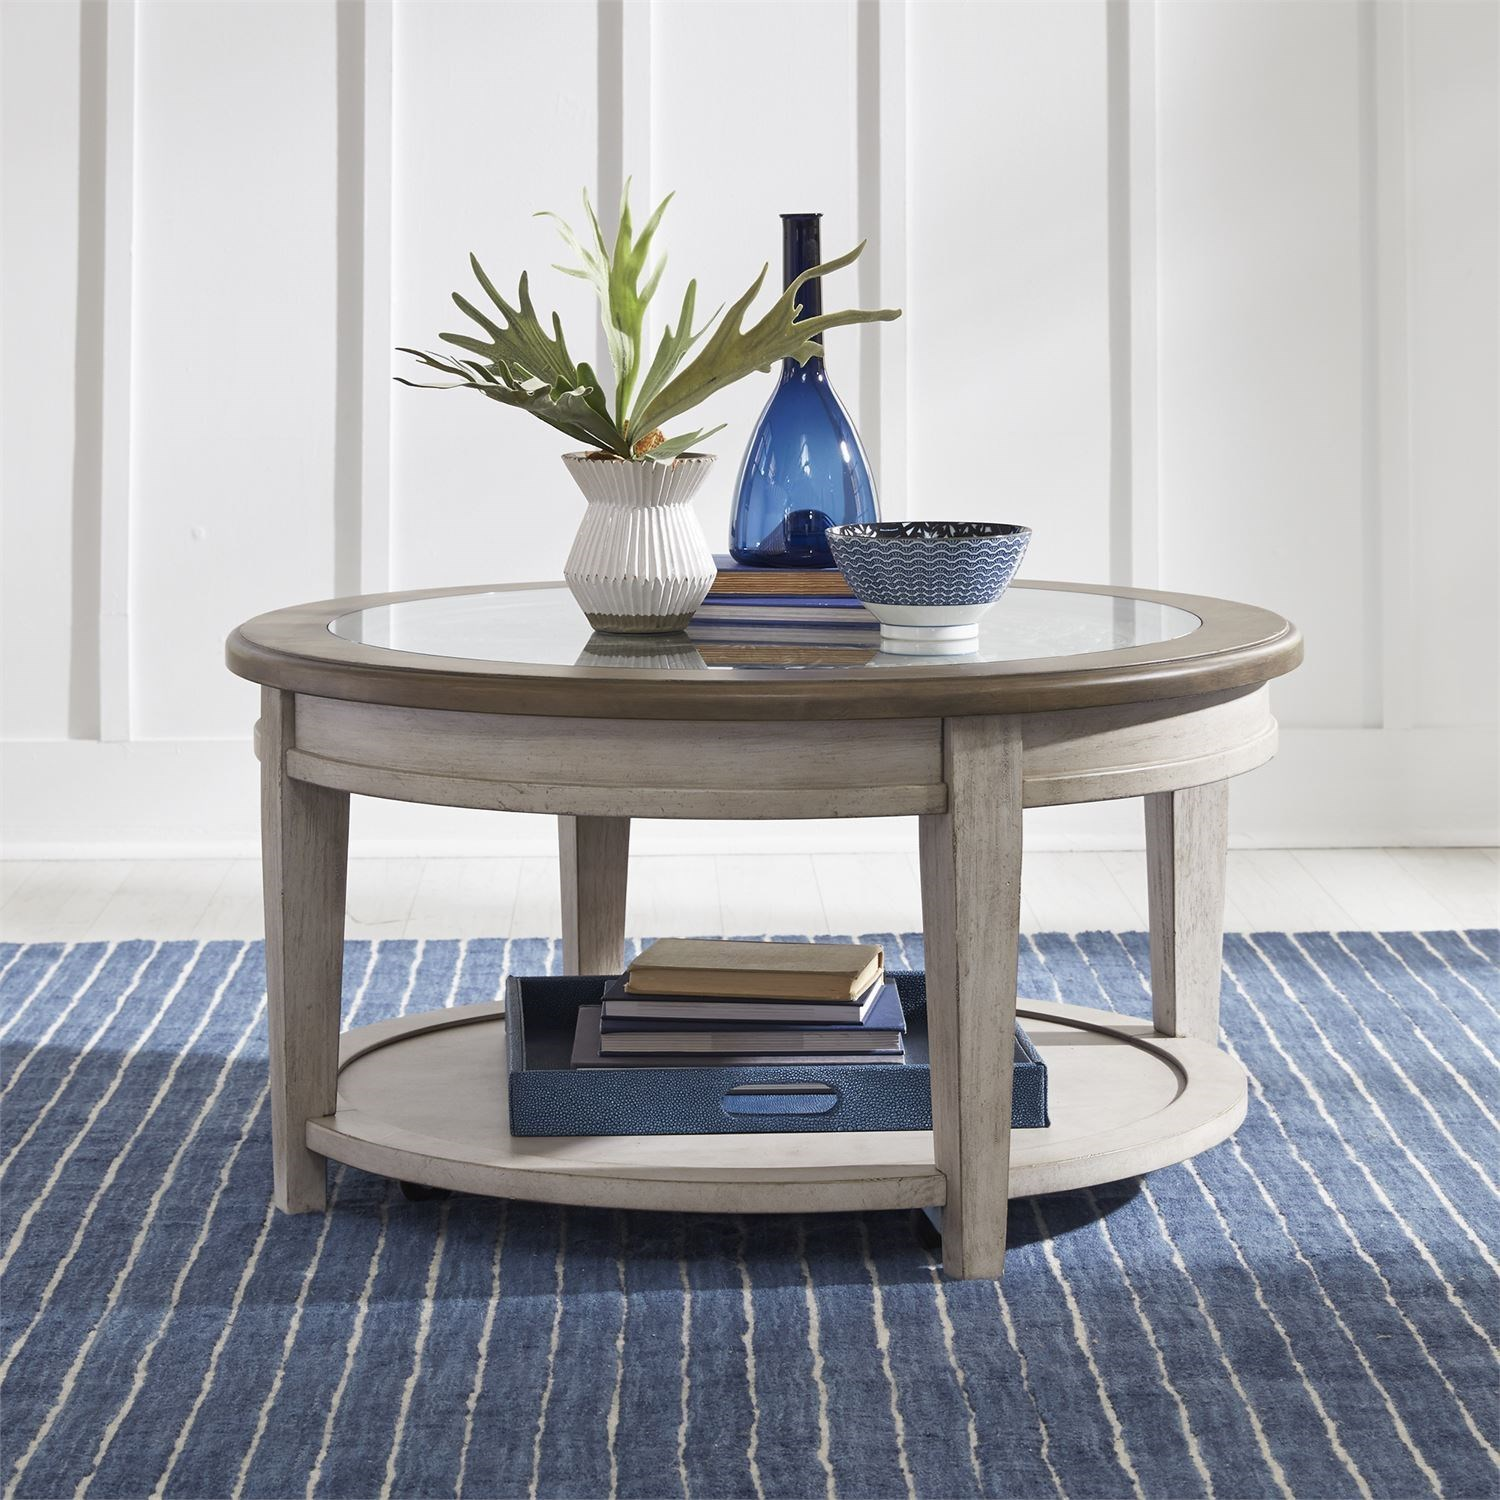 Heartland Round Ceiling Tile Cocktail Table by Liberty Furniture at Northeast Factory Direct